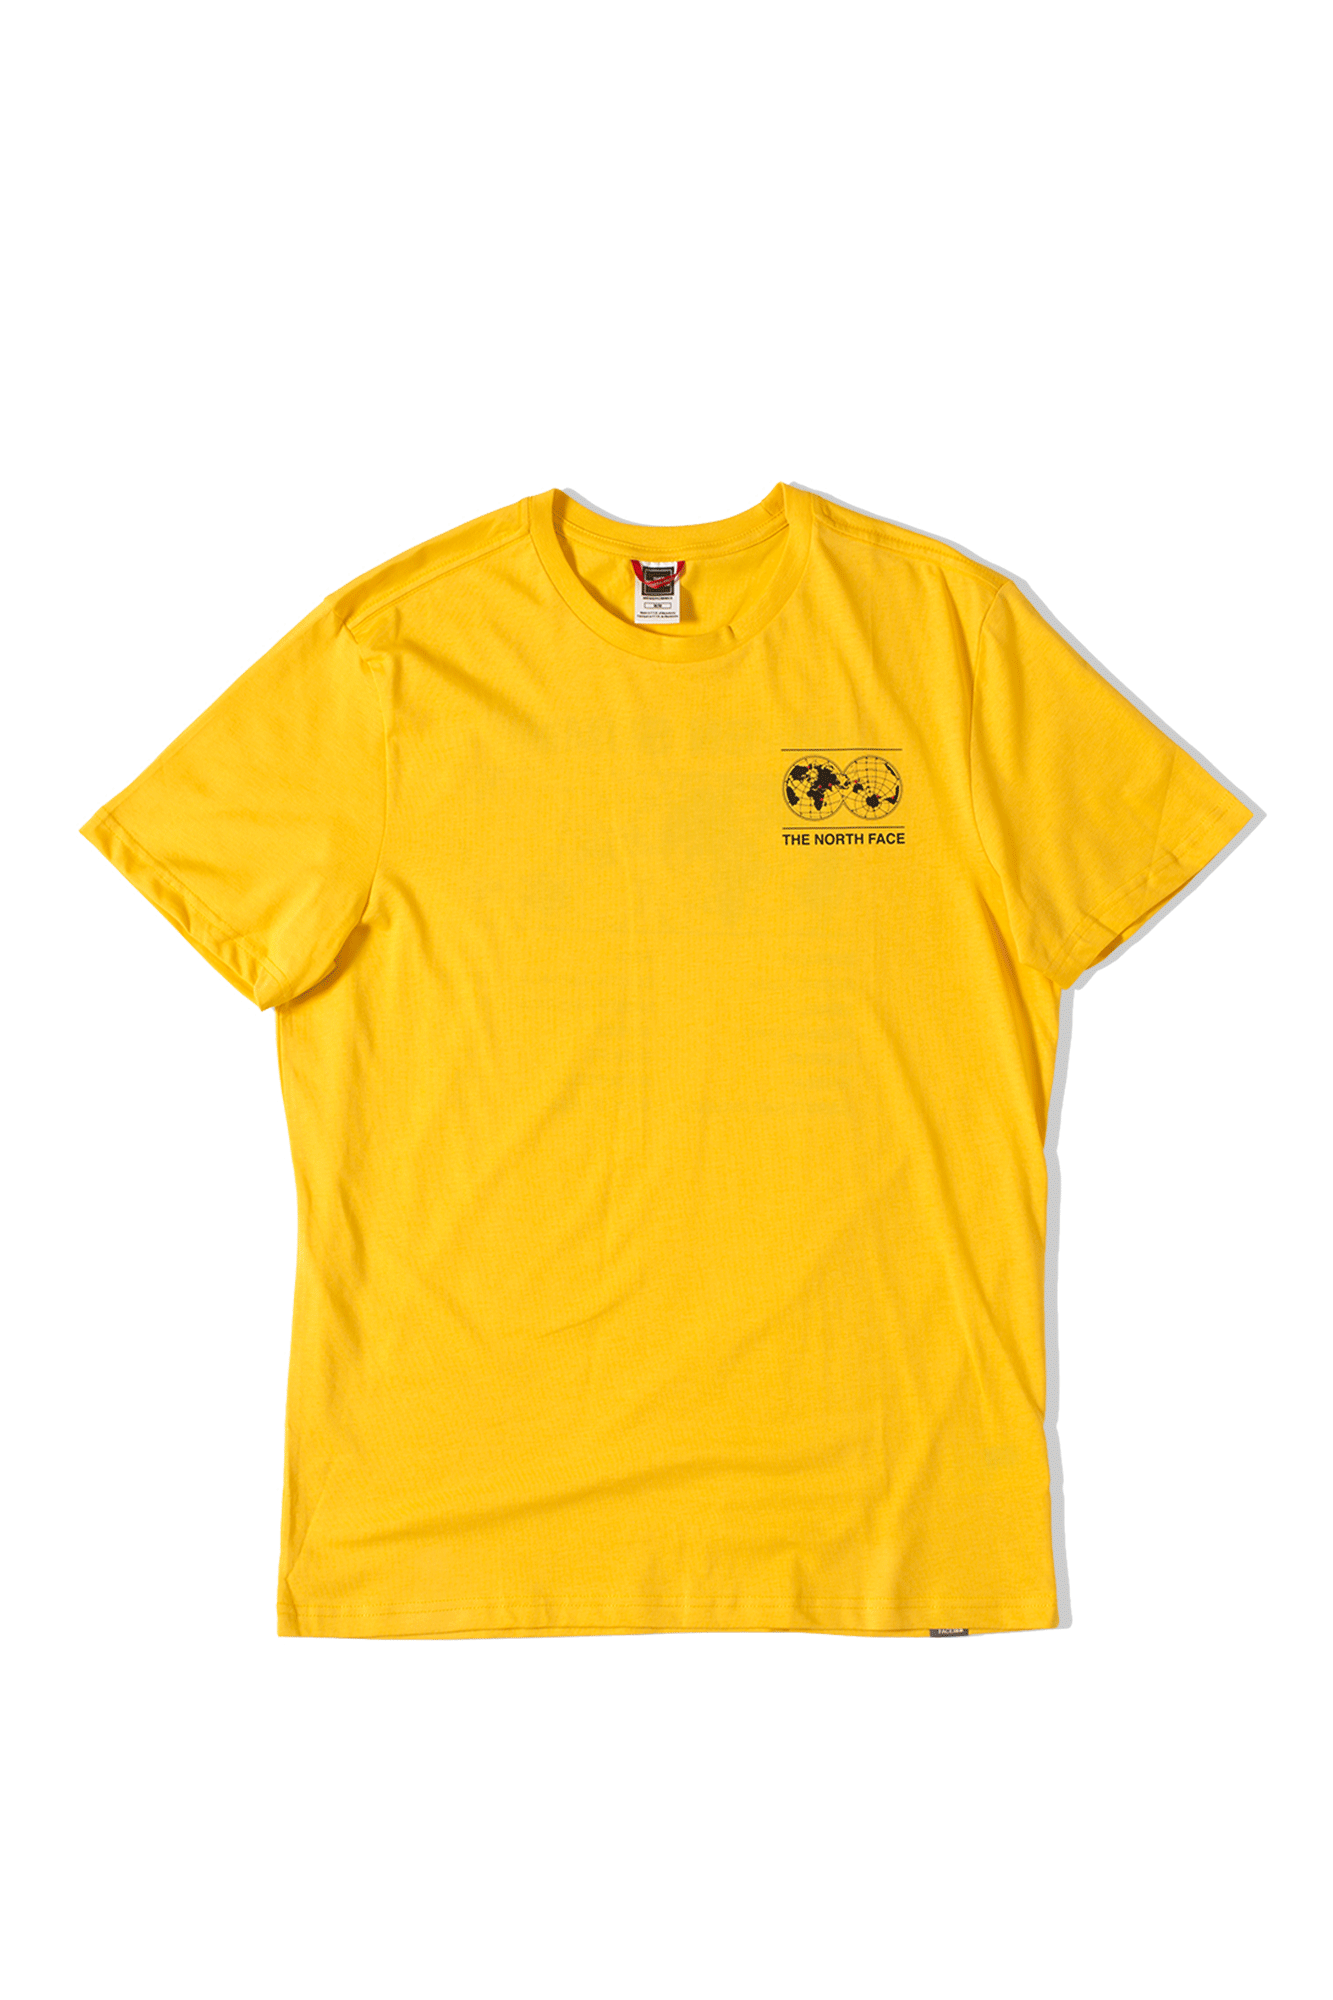 7SE S/S Graphic Tee Yellow